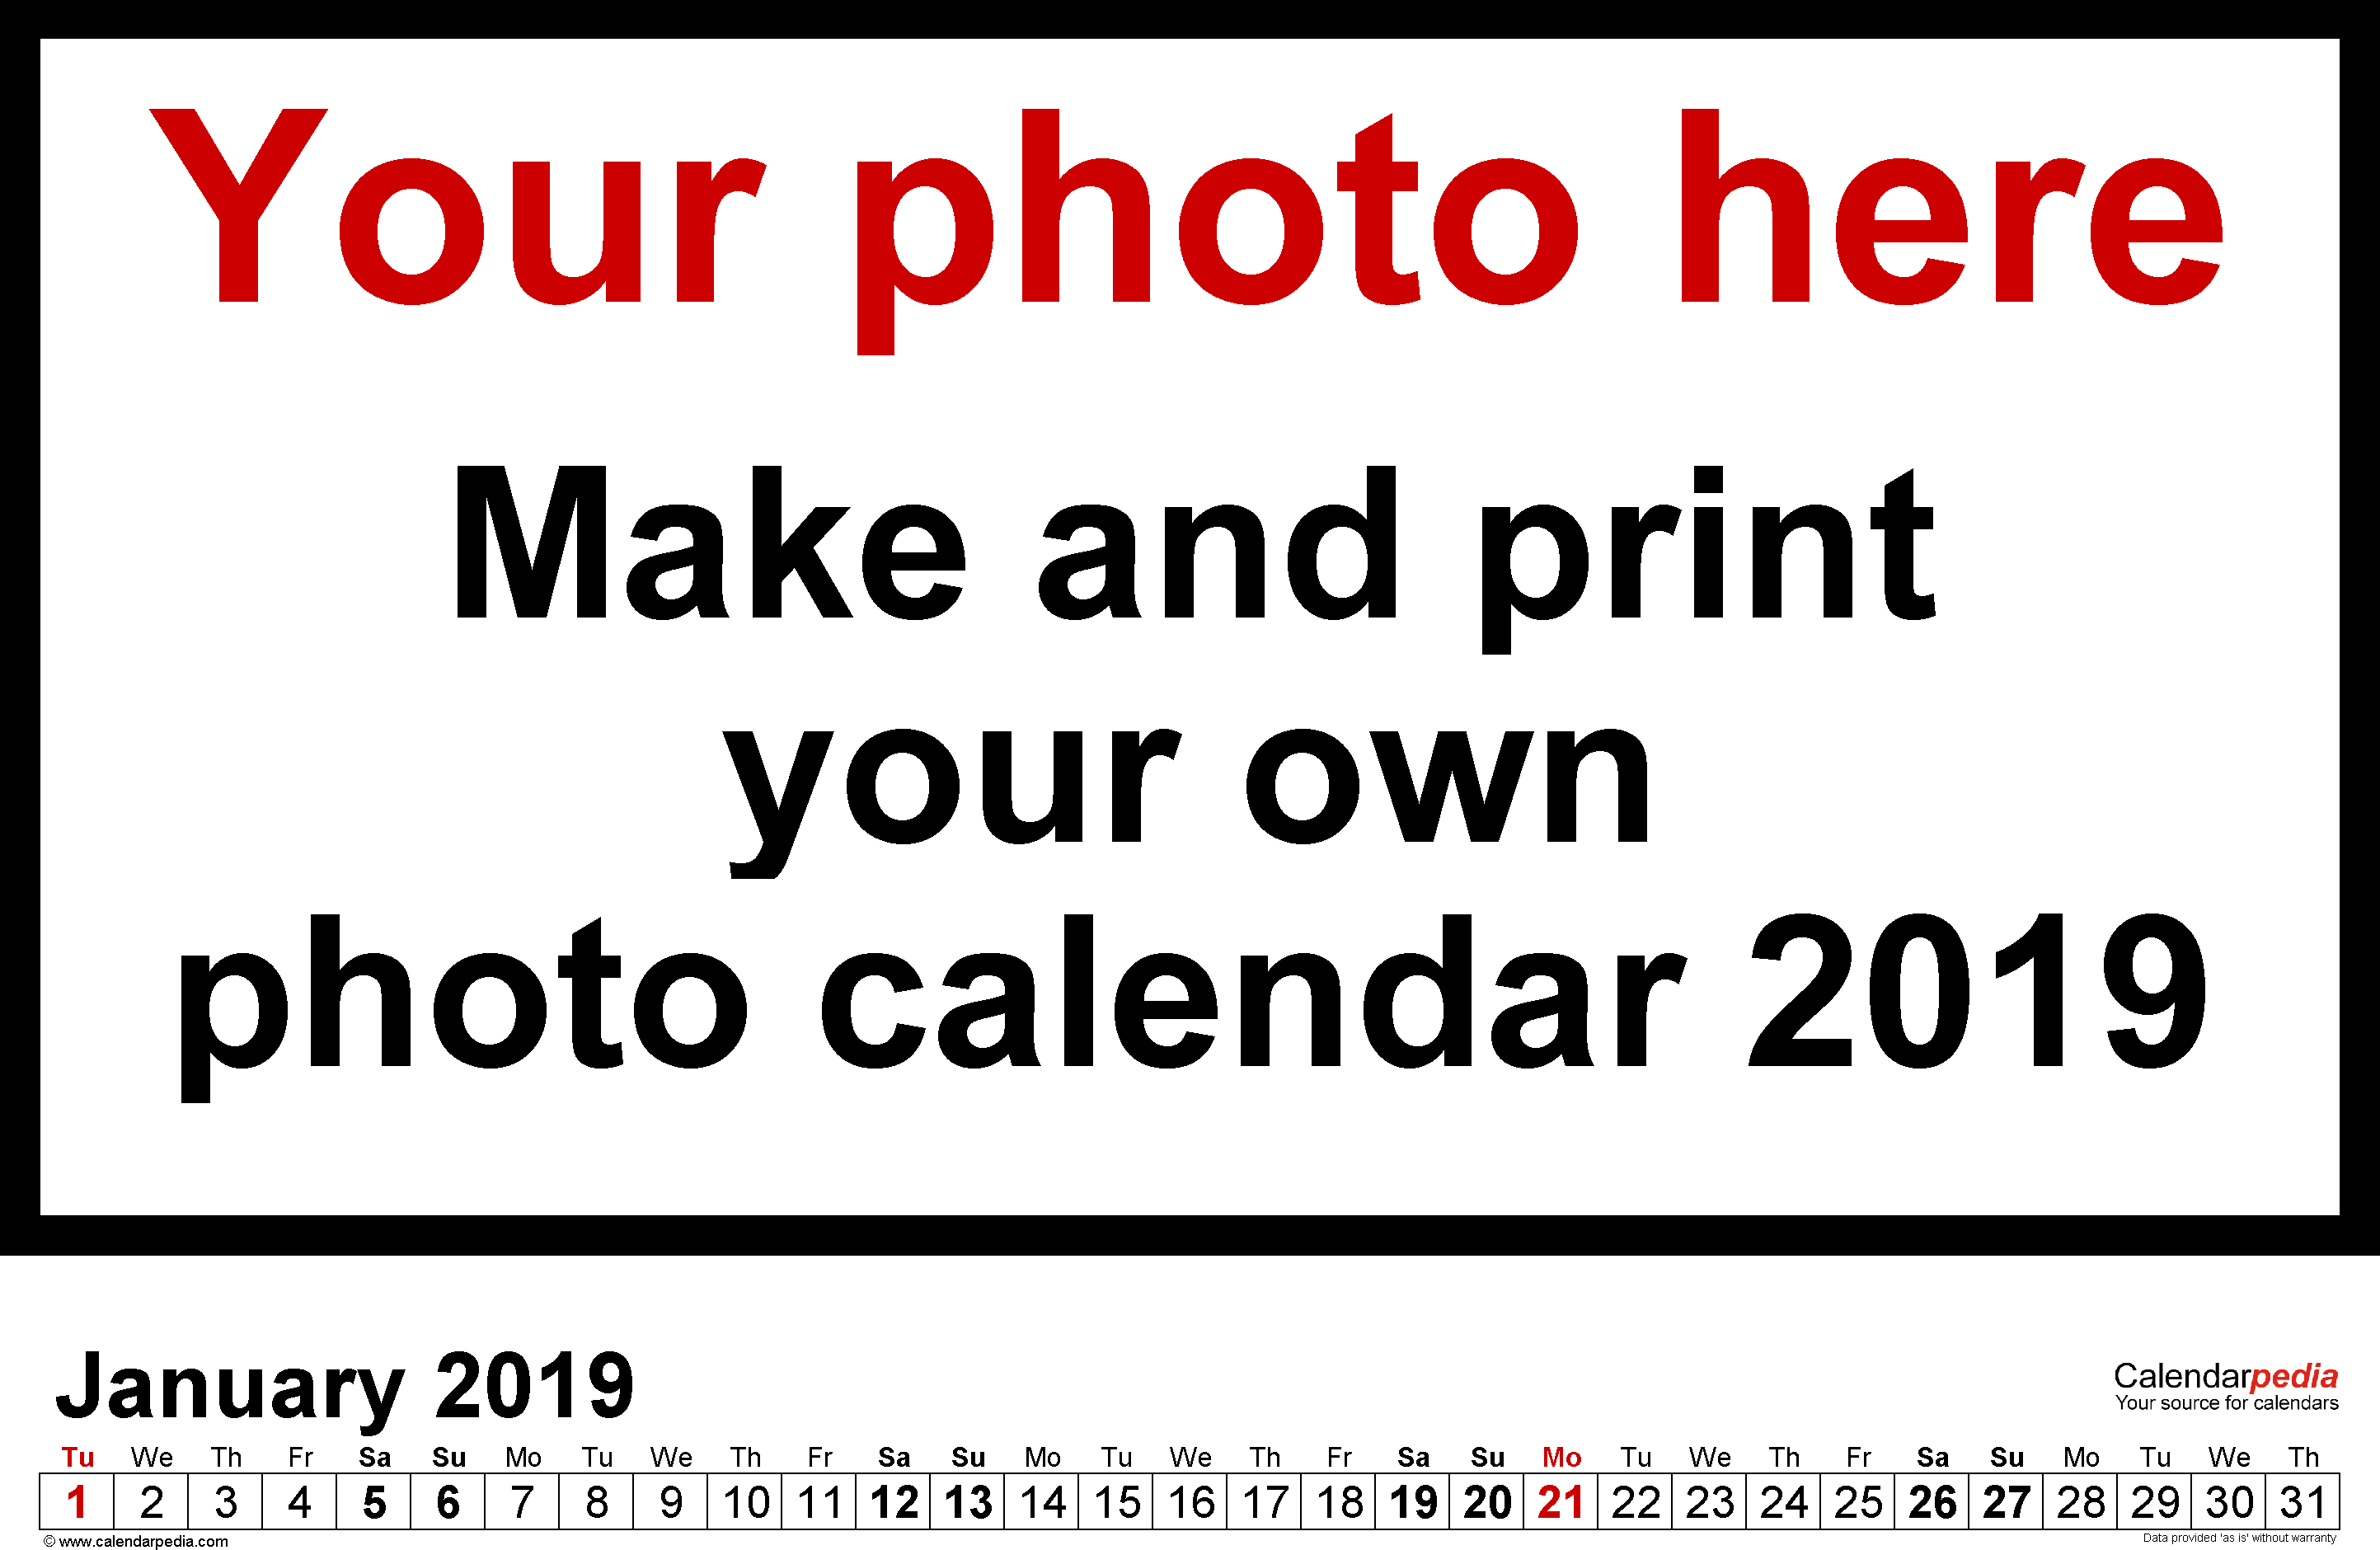 Download Template 5: Photo calendar 2019 for Word, 12 pages, landscape format